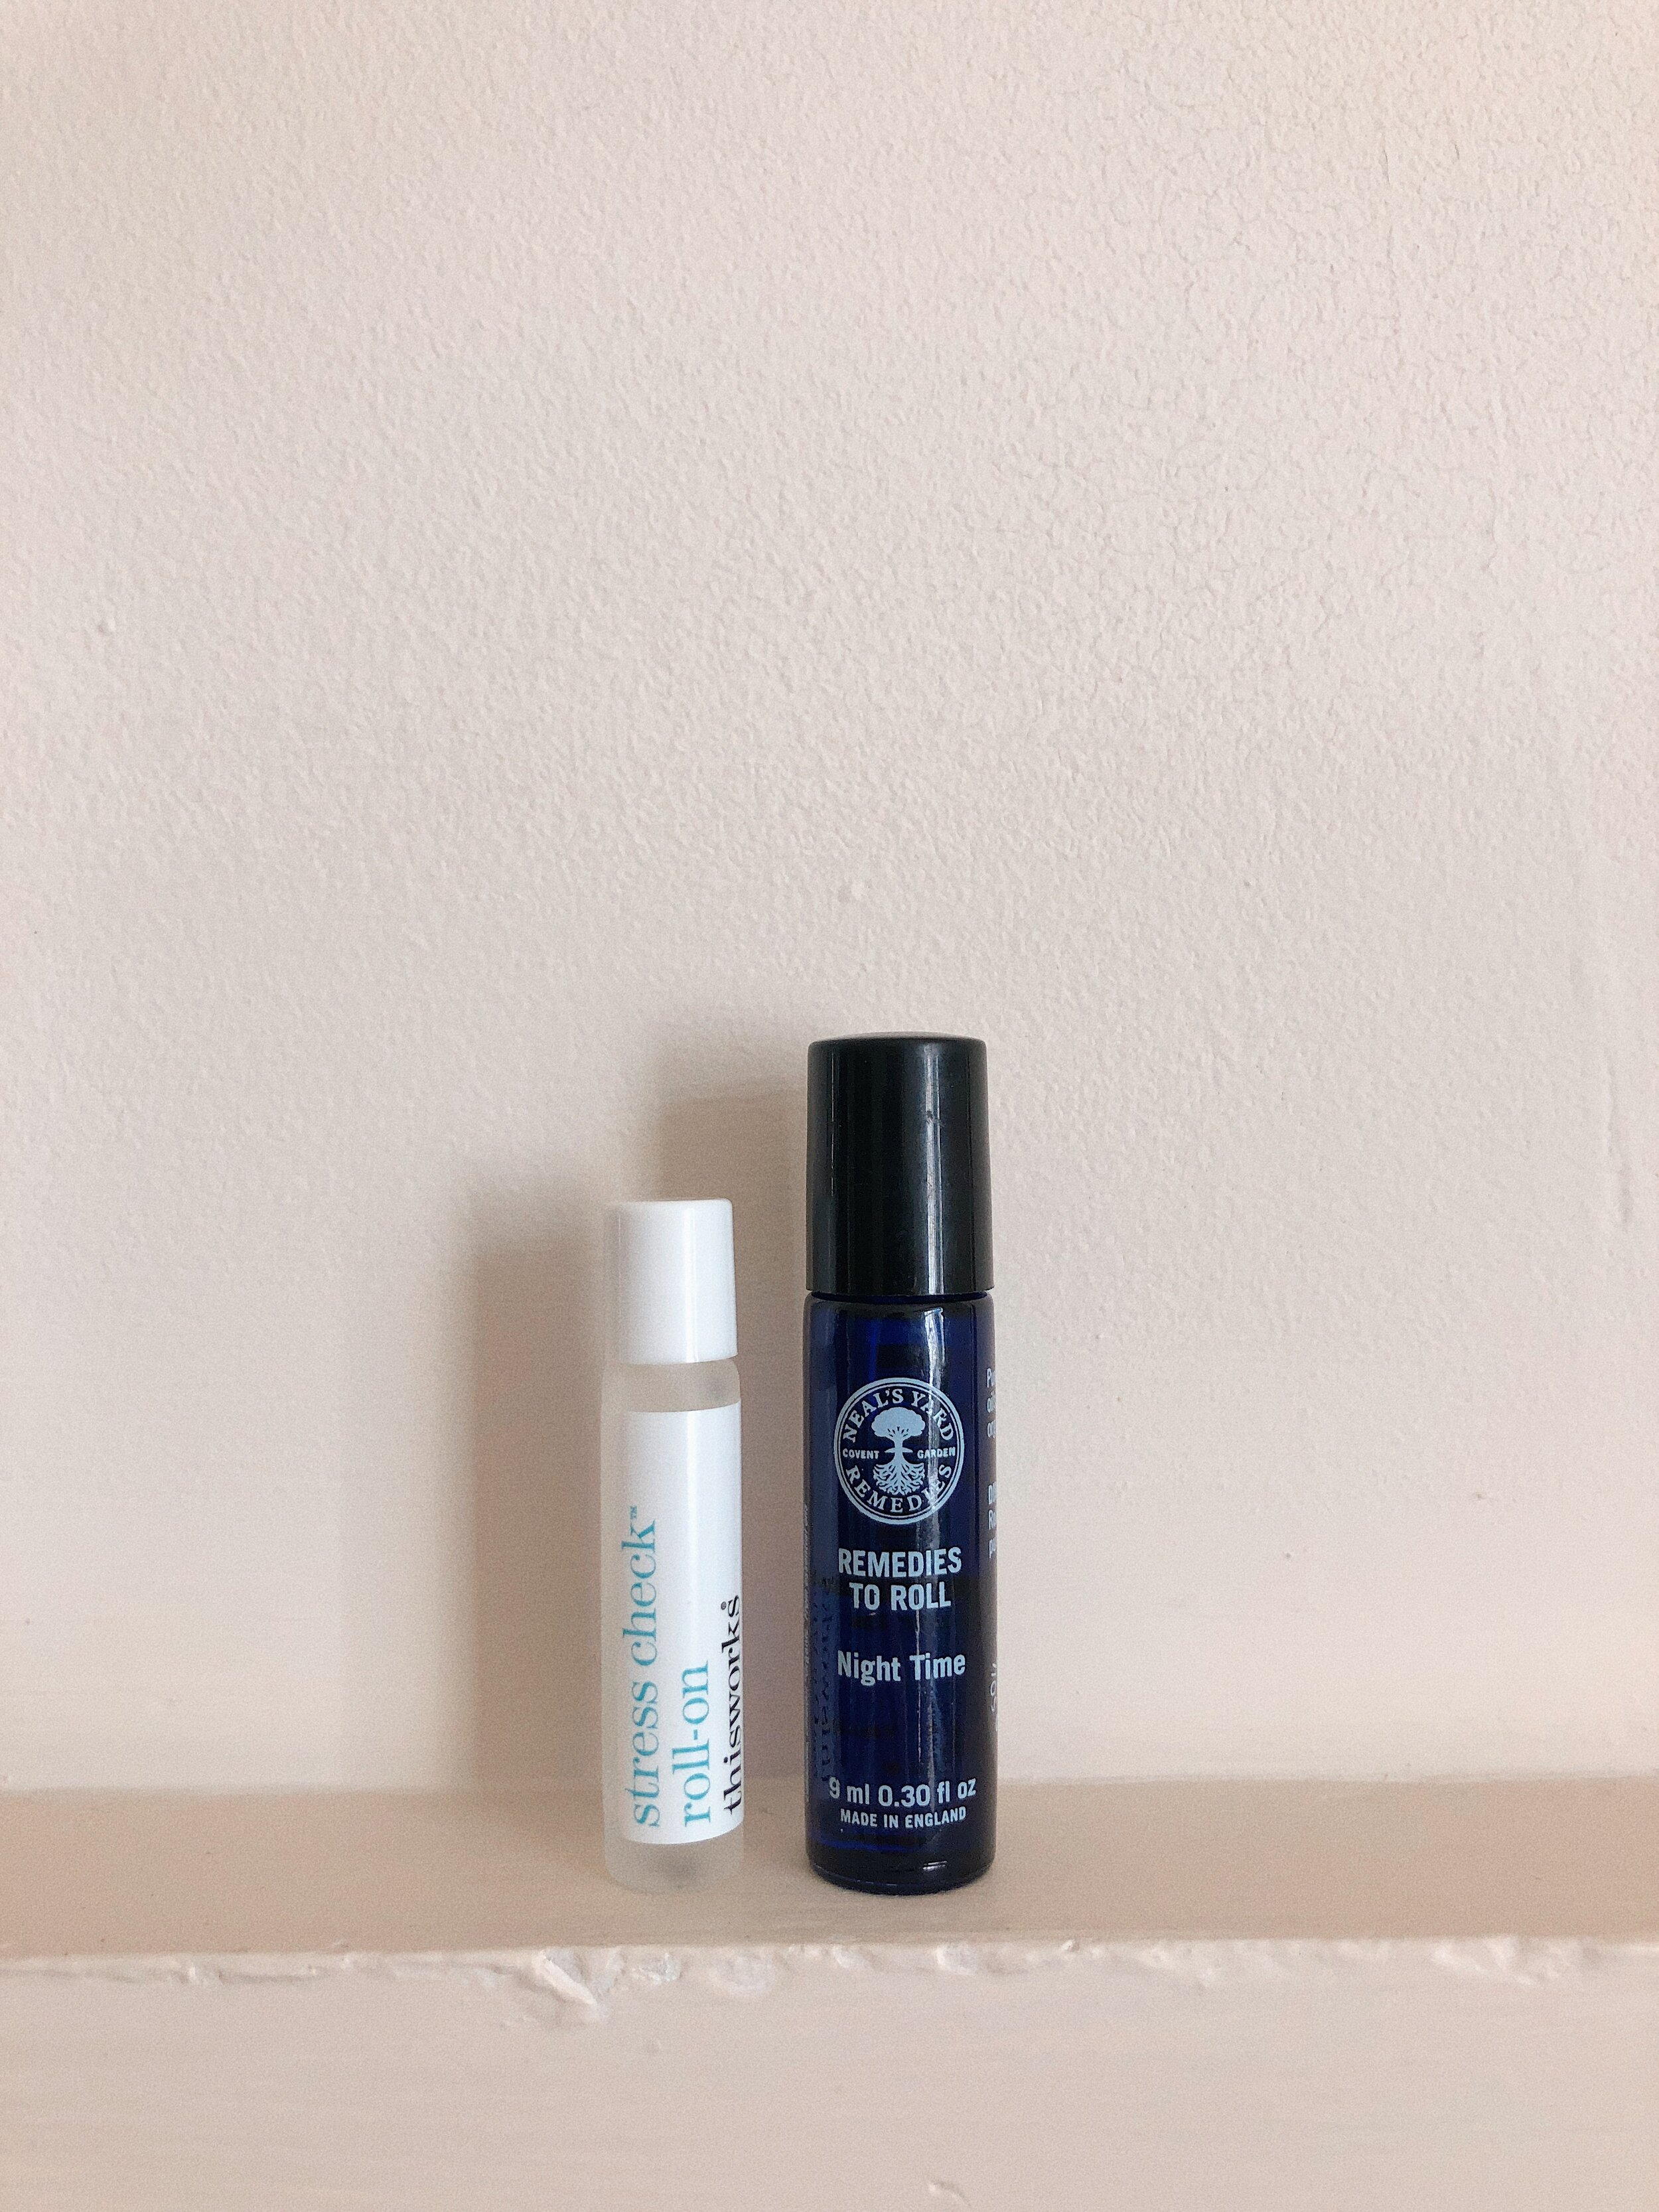 Neals Yard Remedies to Roll Night Time Review